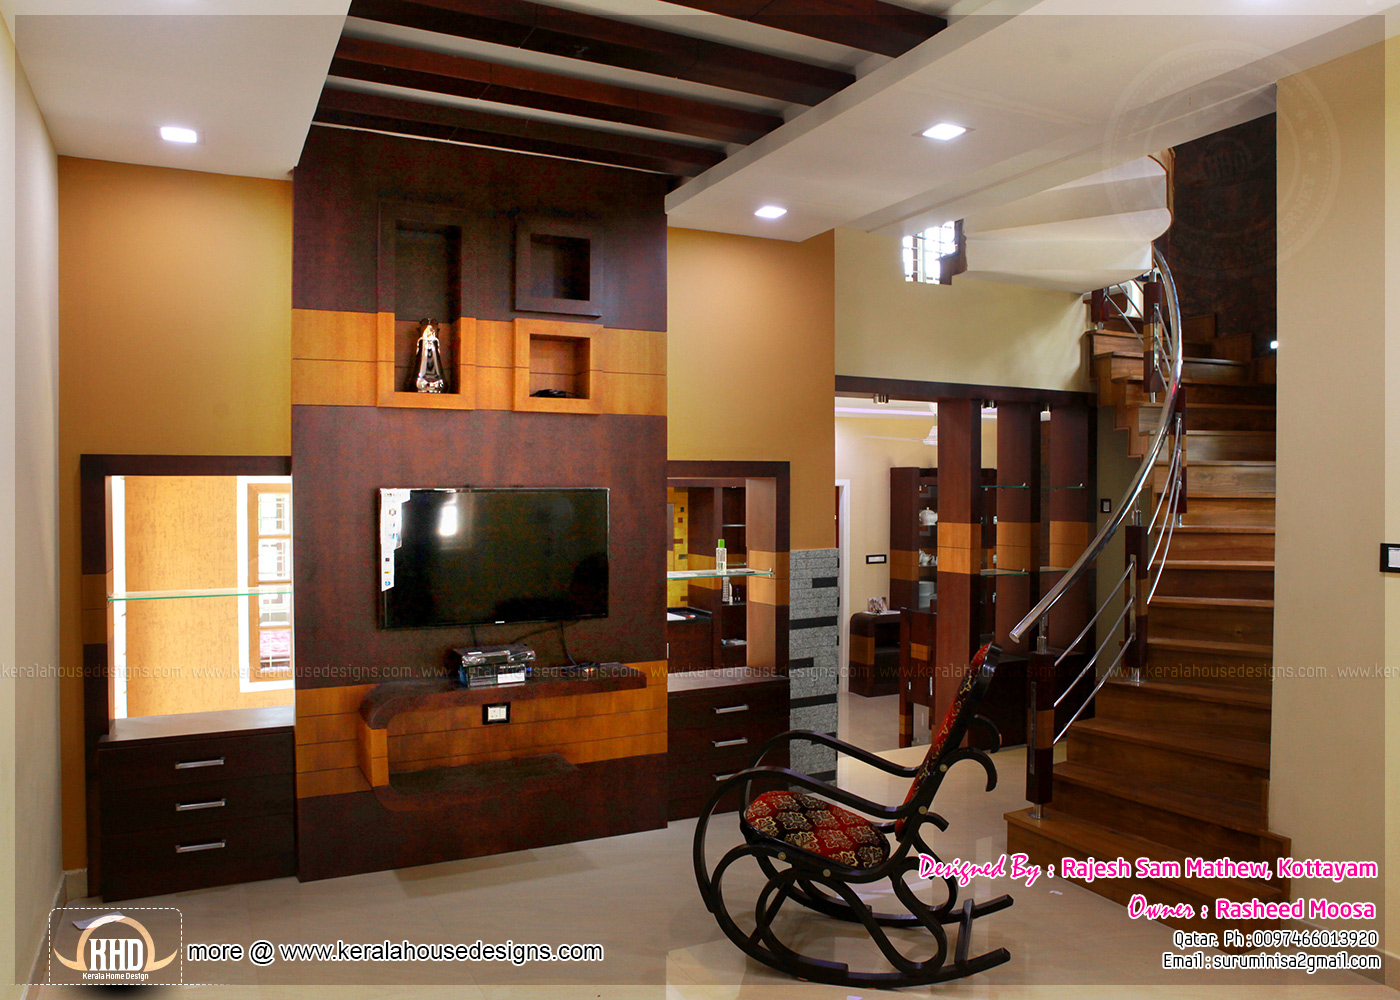 Kerala interior design with photos kerala home design for New home inside design